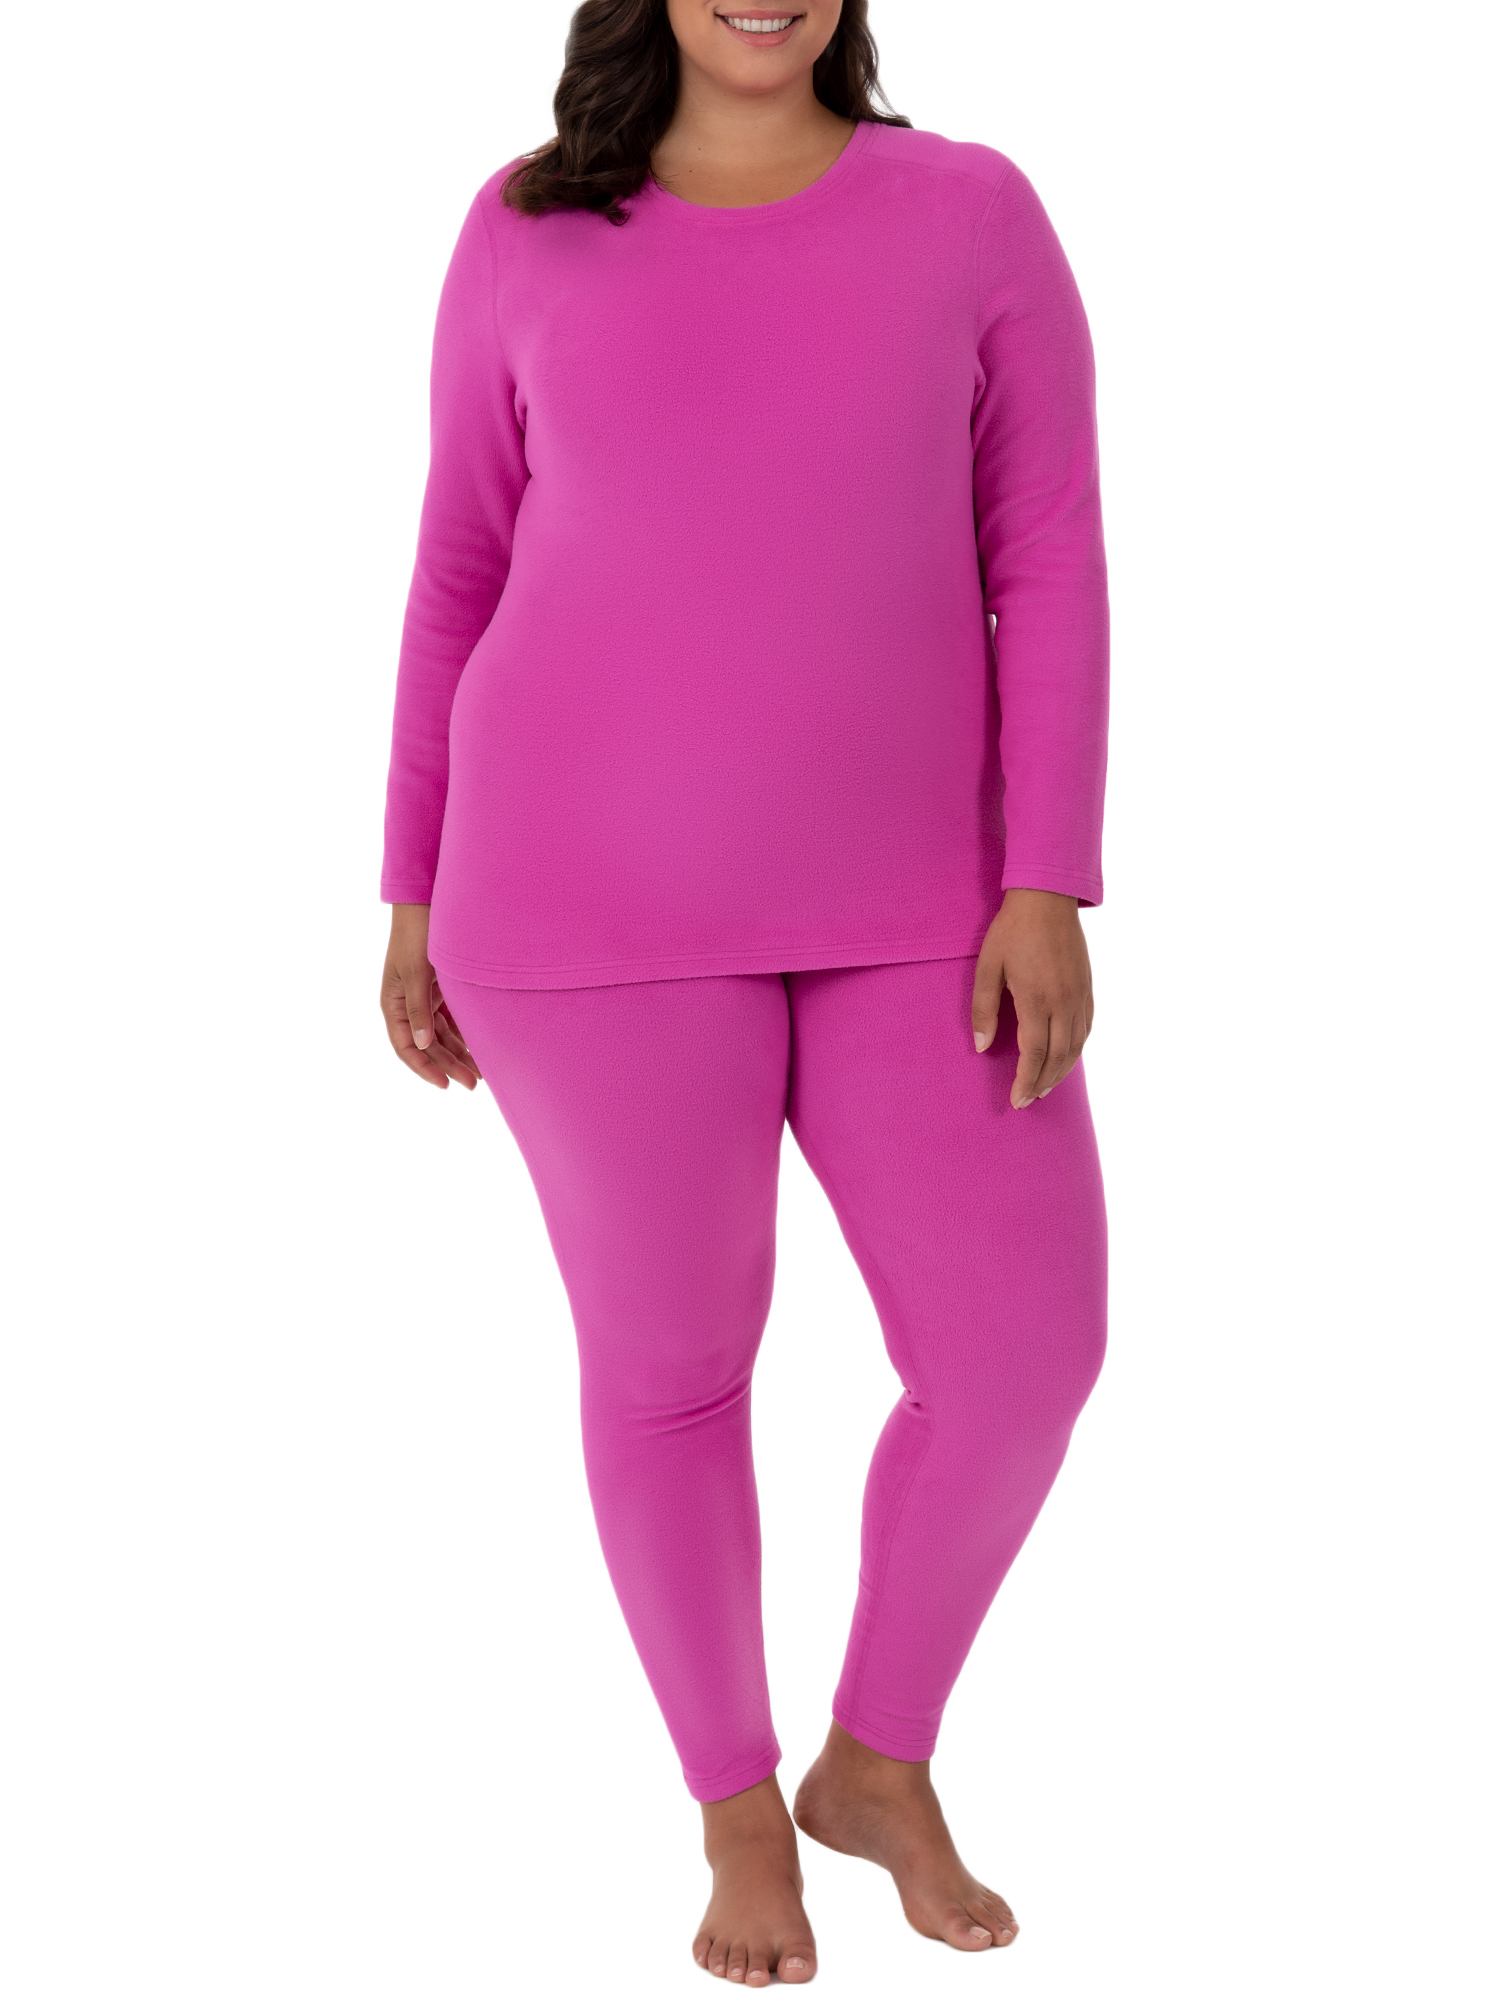 Fit for Me by Fruit of the Loom Women's Plus Size Stretch Fleece Thermal Top and Pant Set